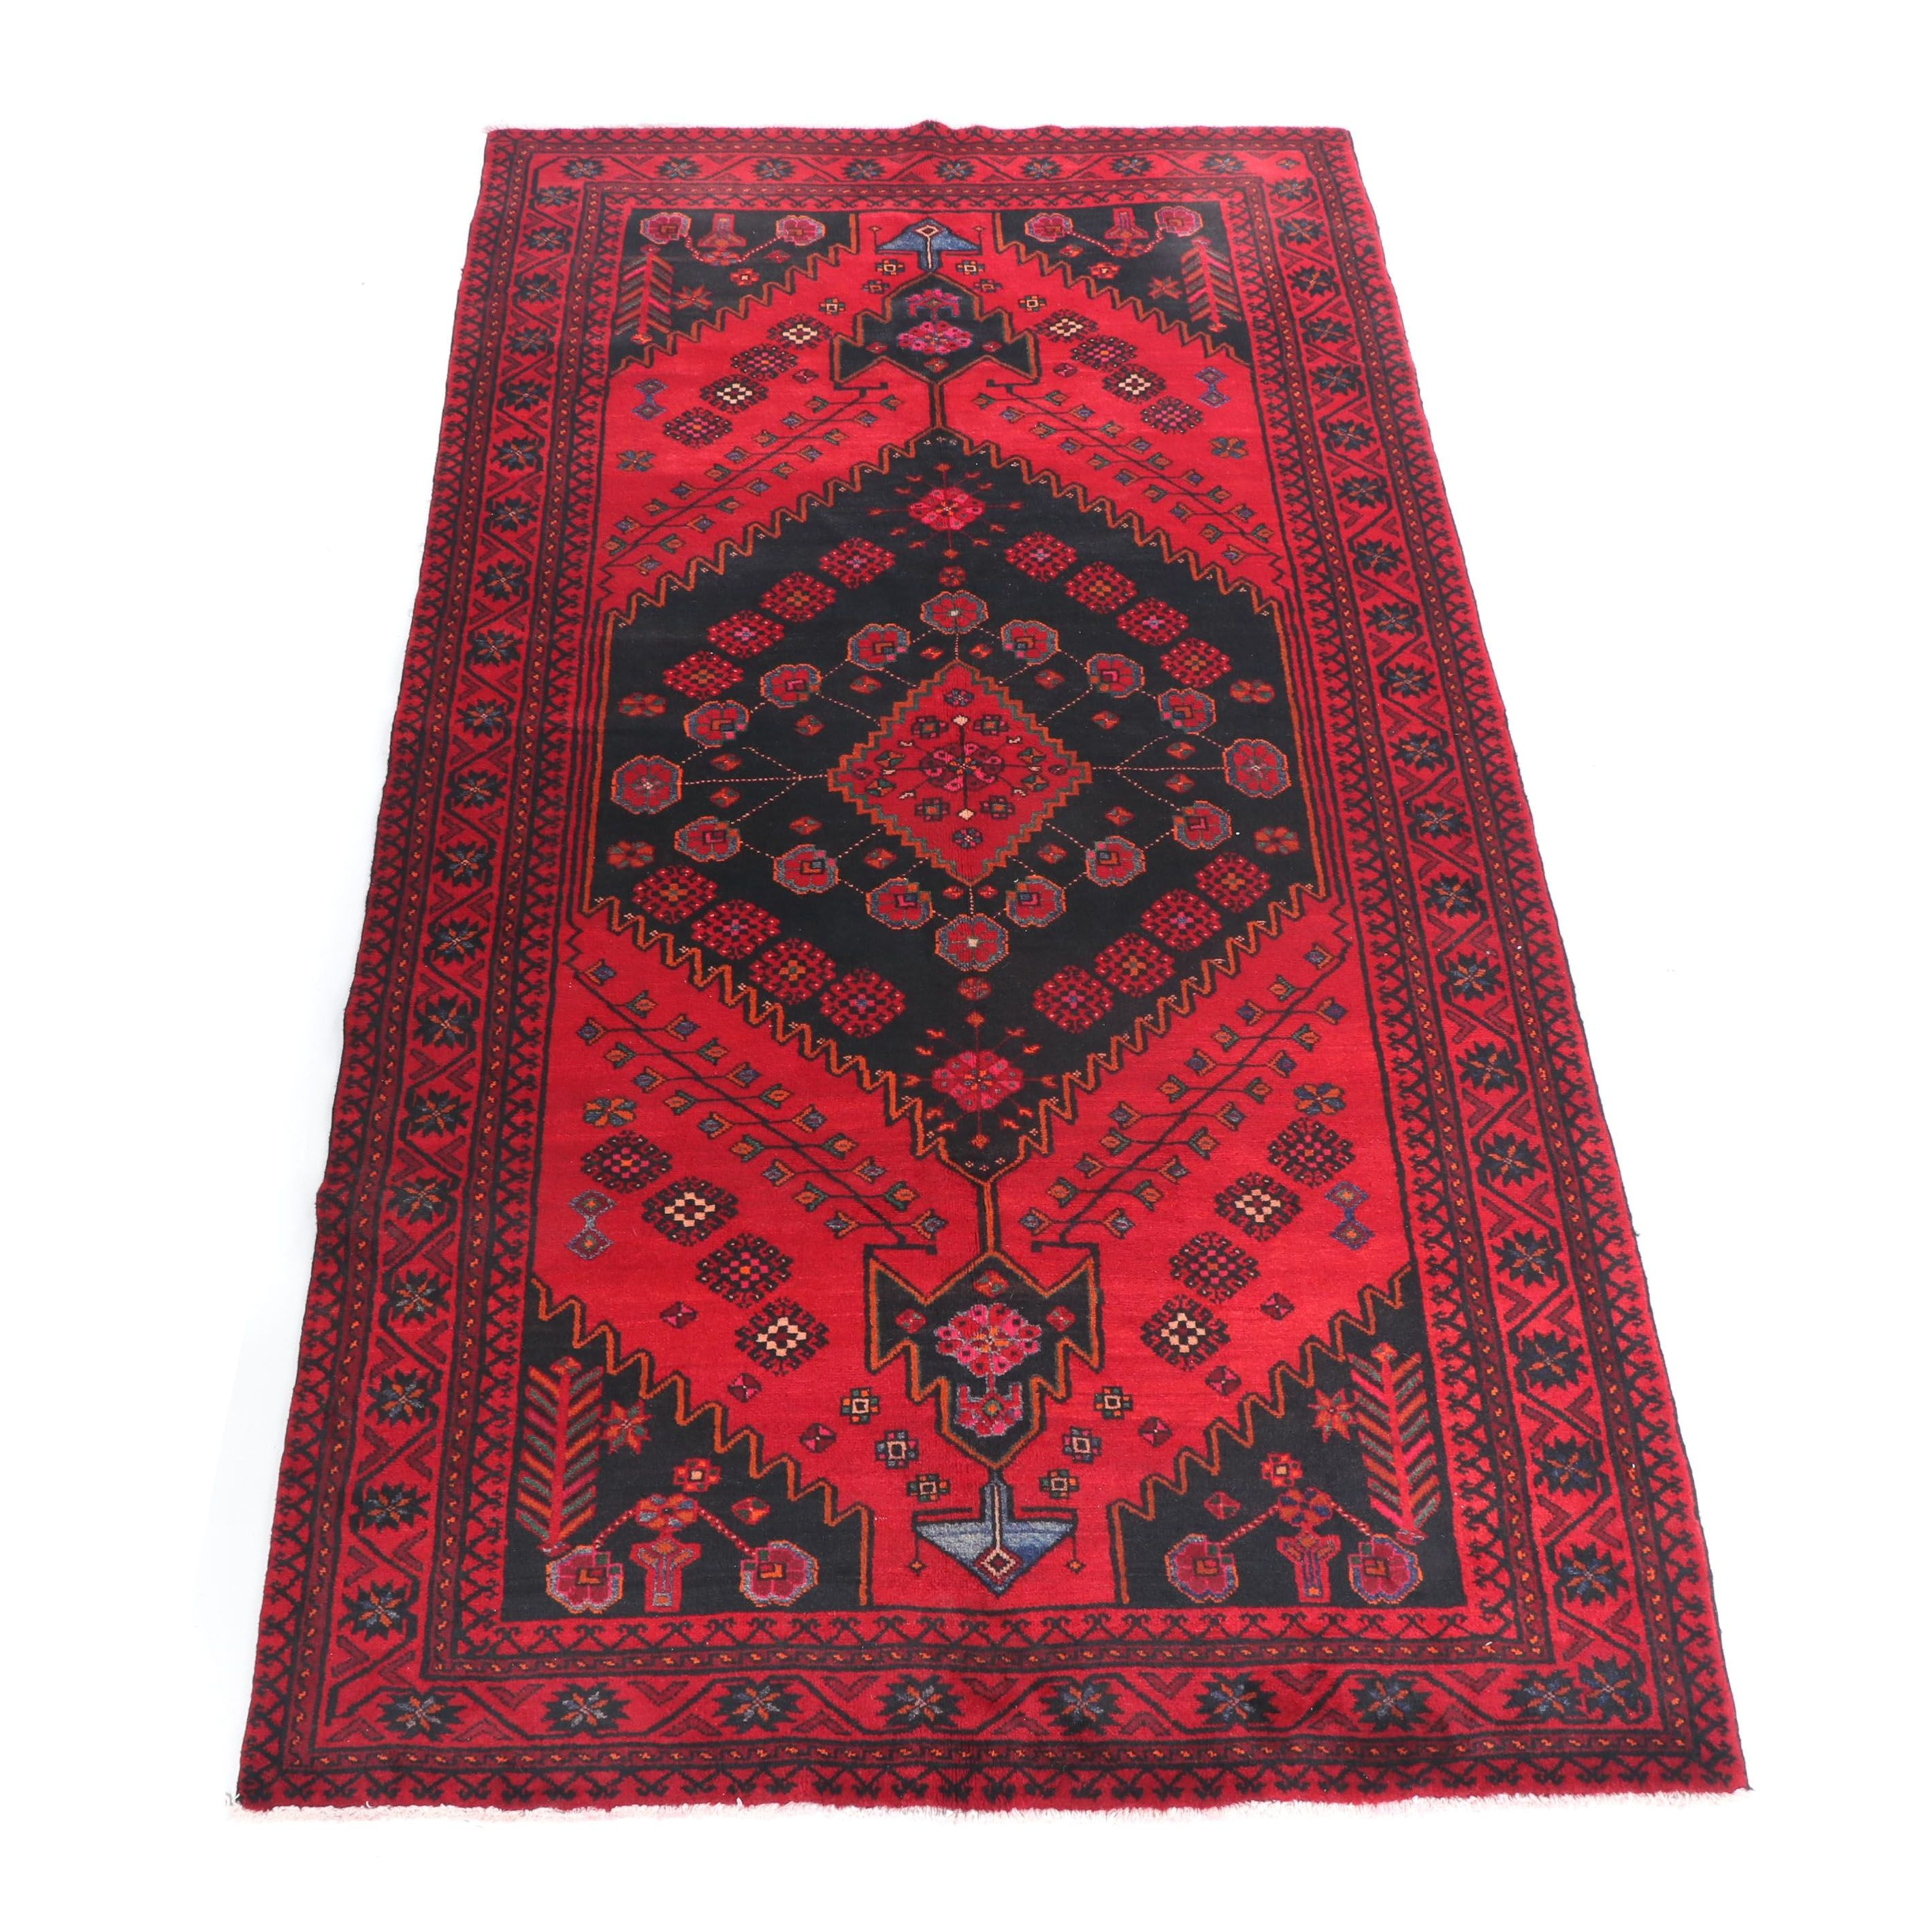 Hand-Knotted Persian Baluchi Wool Rug